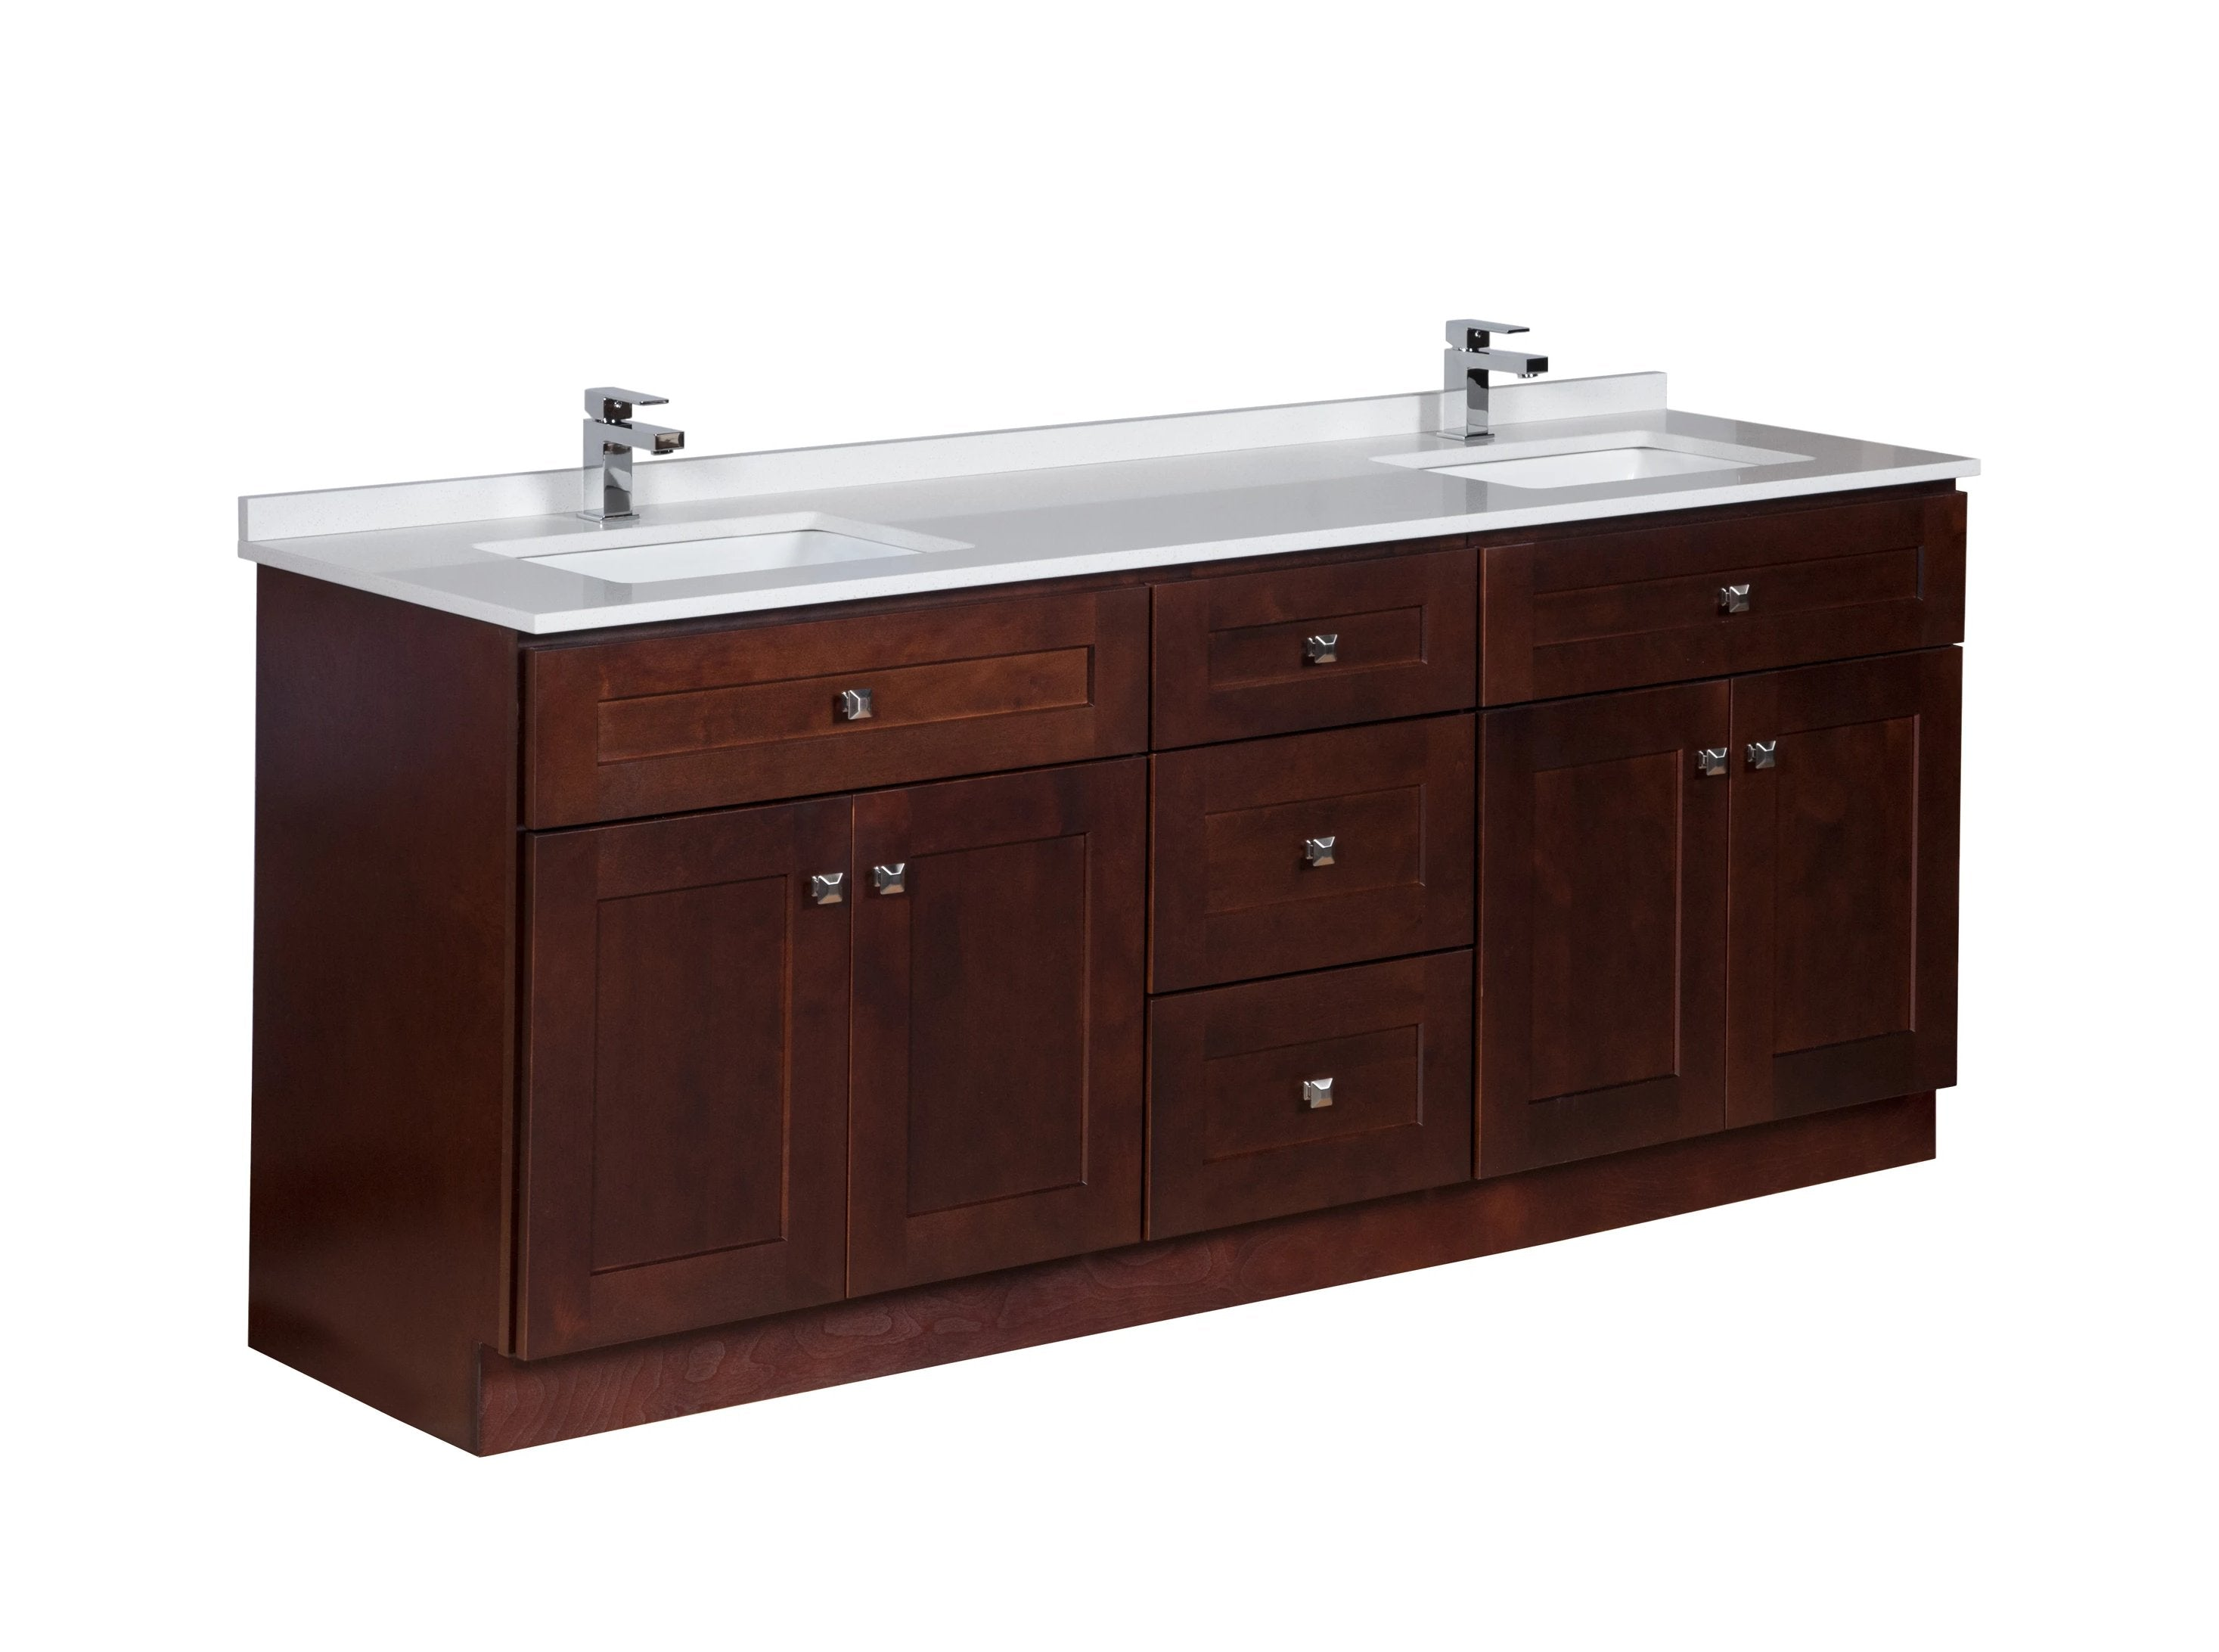 sinks vanity double top vessel for bathroom with